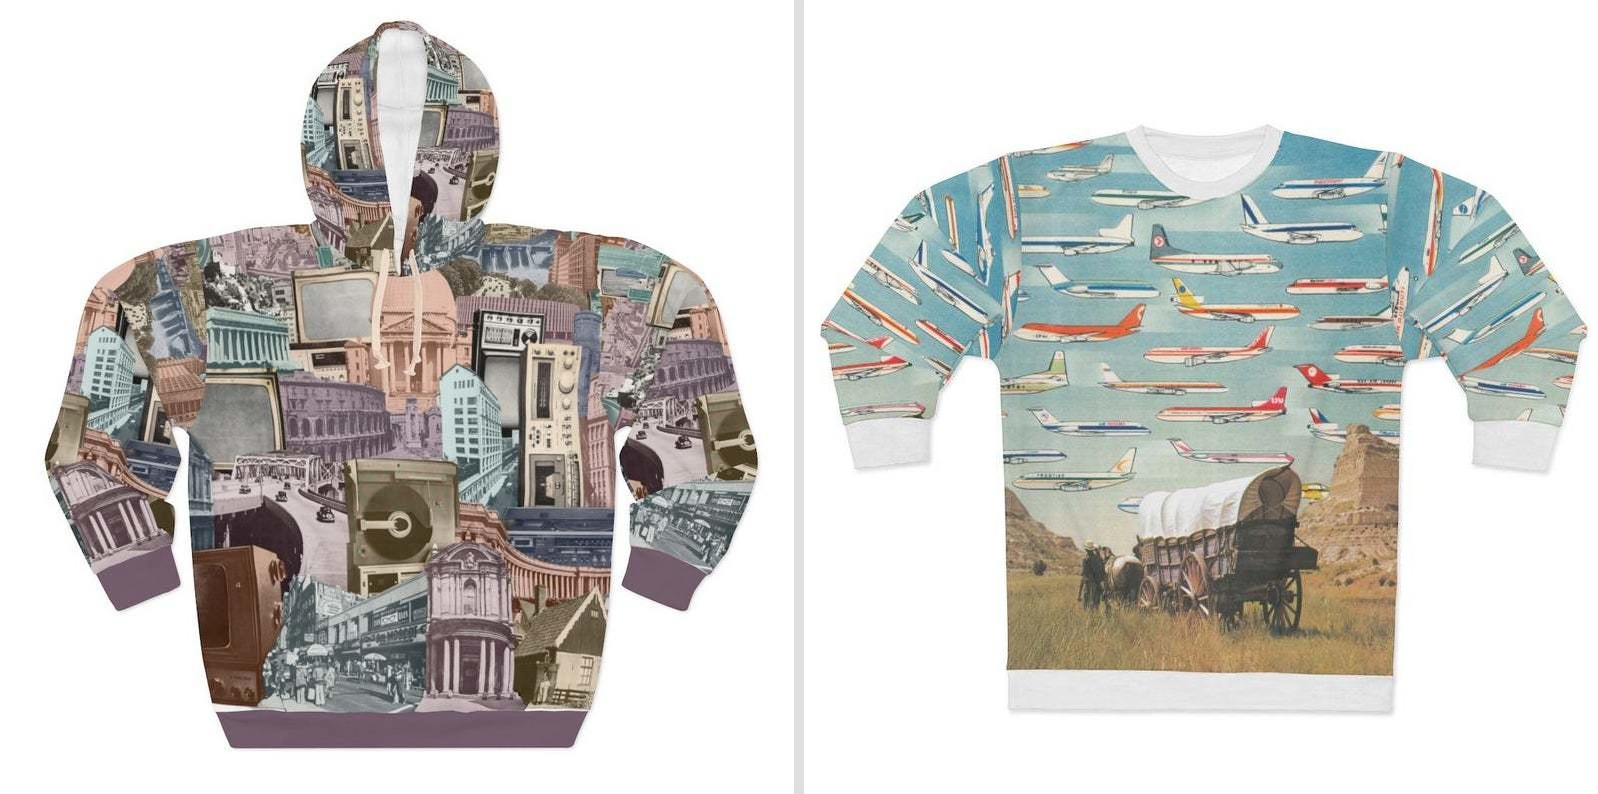 Morgan Jesse Lappin's New Collage Apparel Line on Etsy